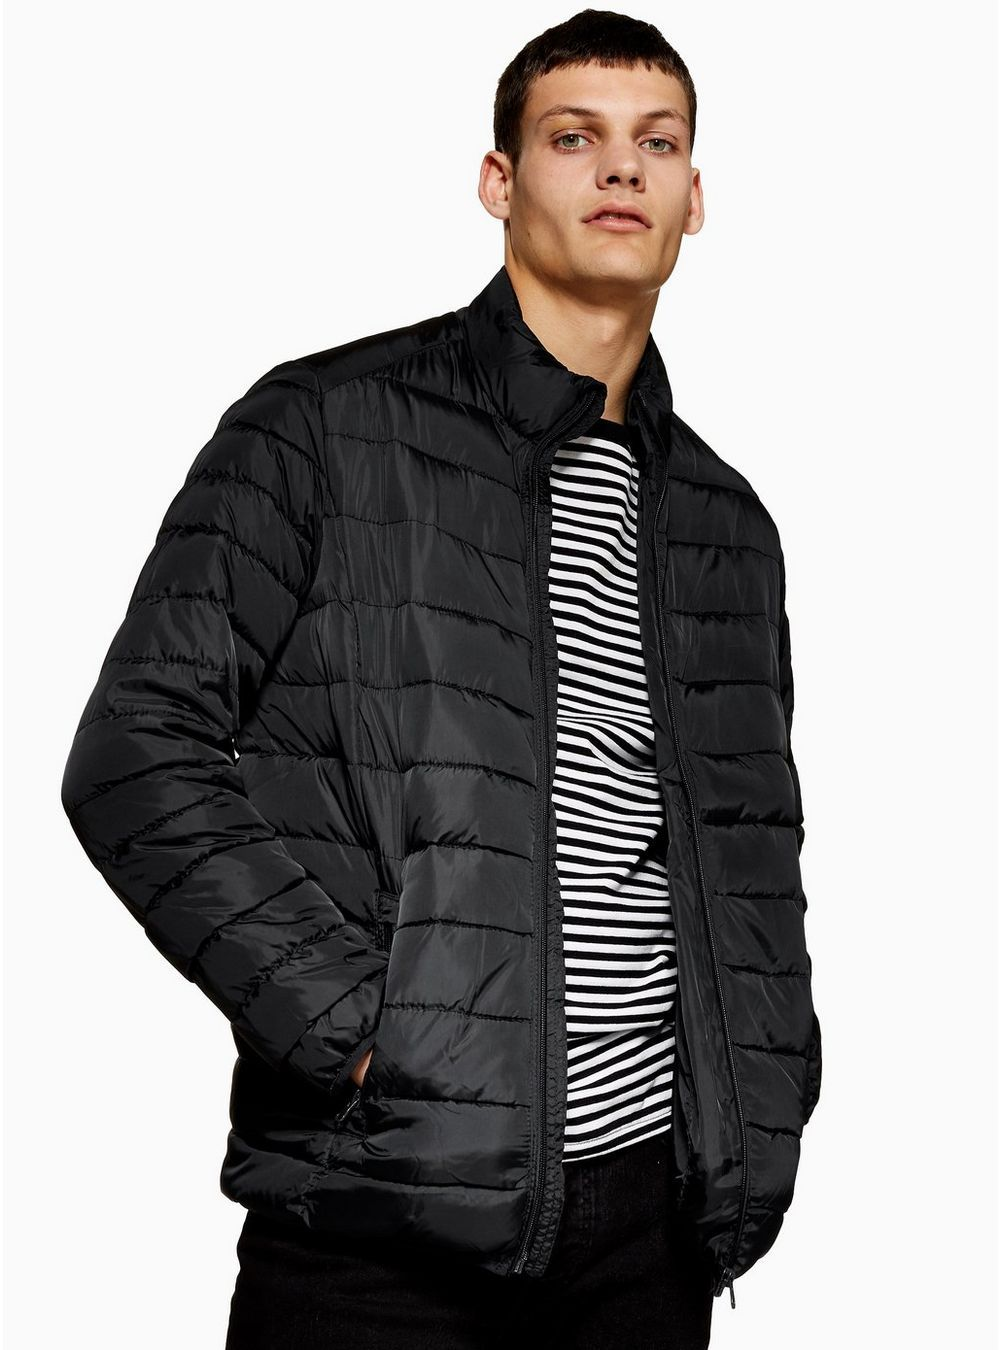 ONLY & SONS Navy Puffer Jacket Jackets, Leather jacket